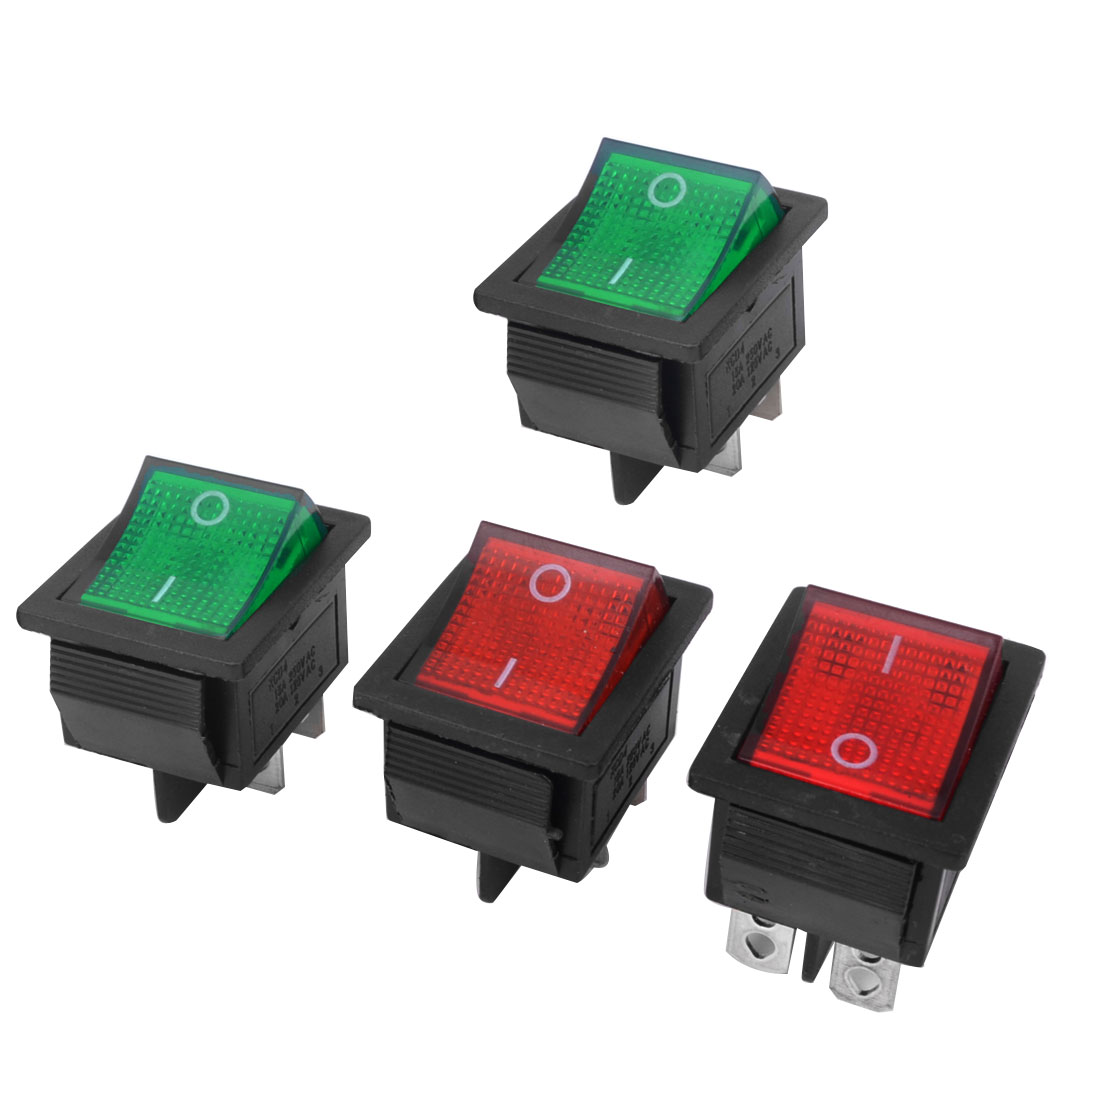 4pcs AC 250V 15A 125V 20A 4 Pins DPST 2 Position Red Green Light Snap in Boat Rocker Switch